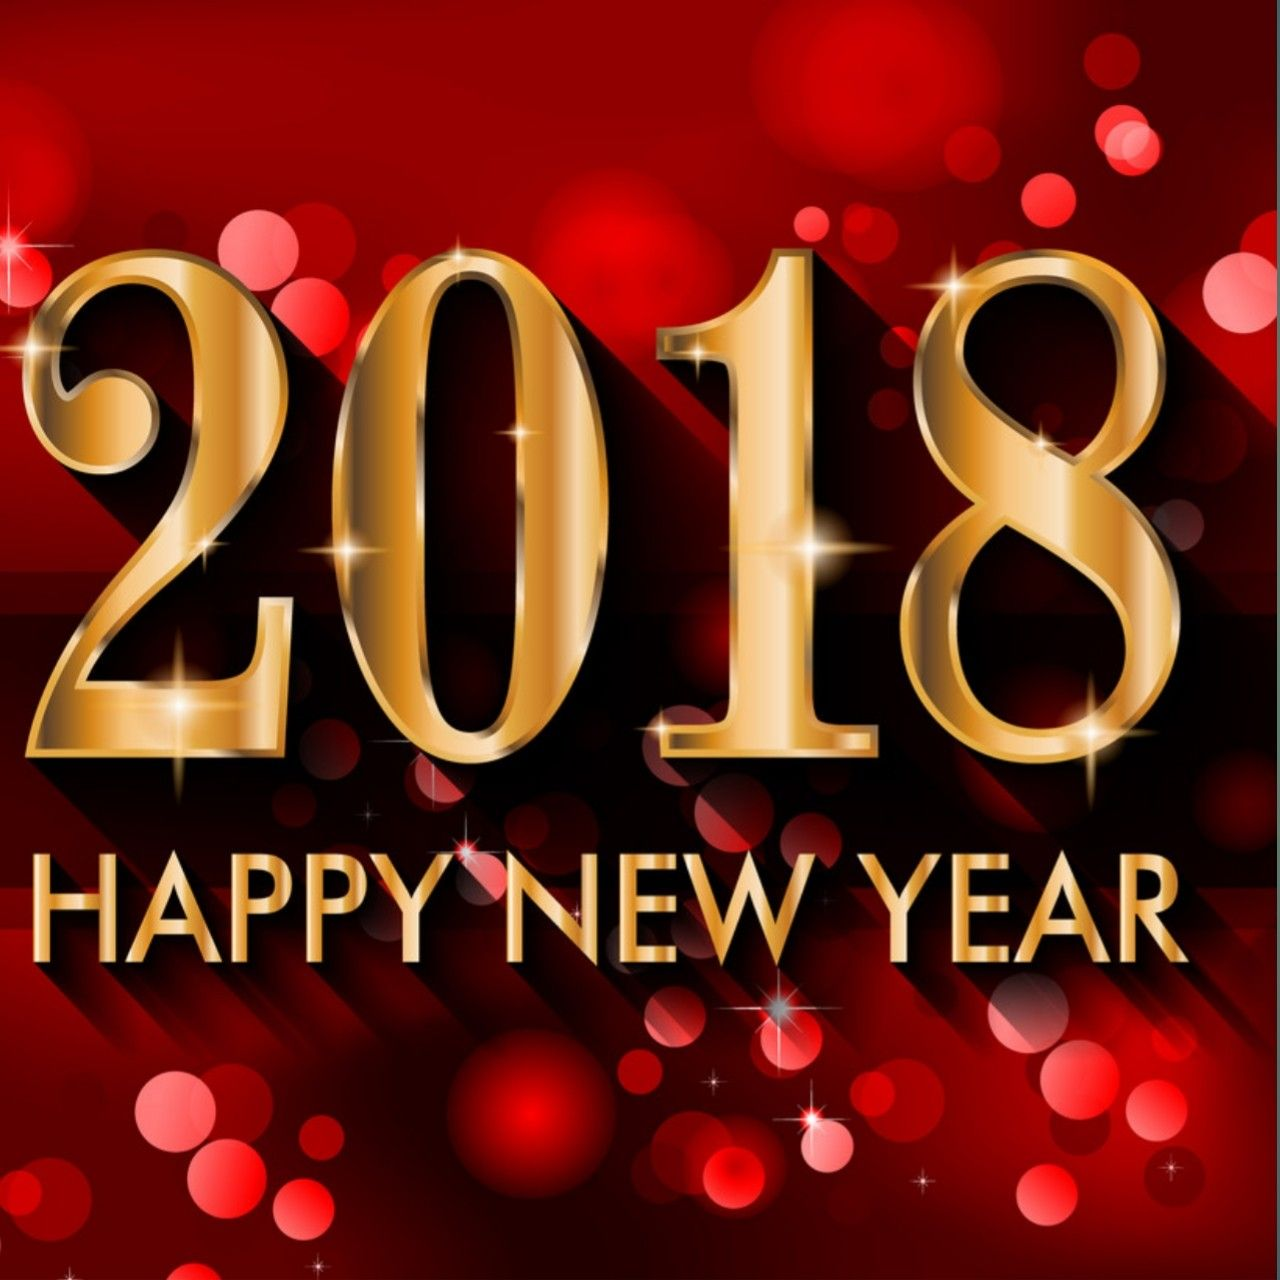 Happy New Year to all our supporters, clients, and friends